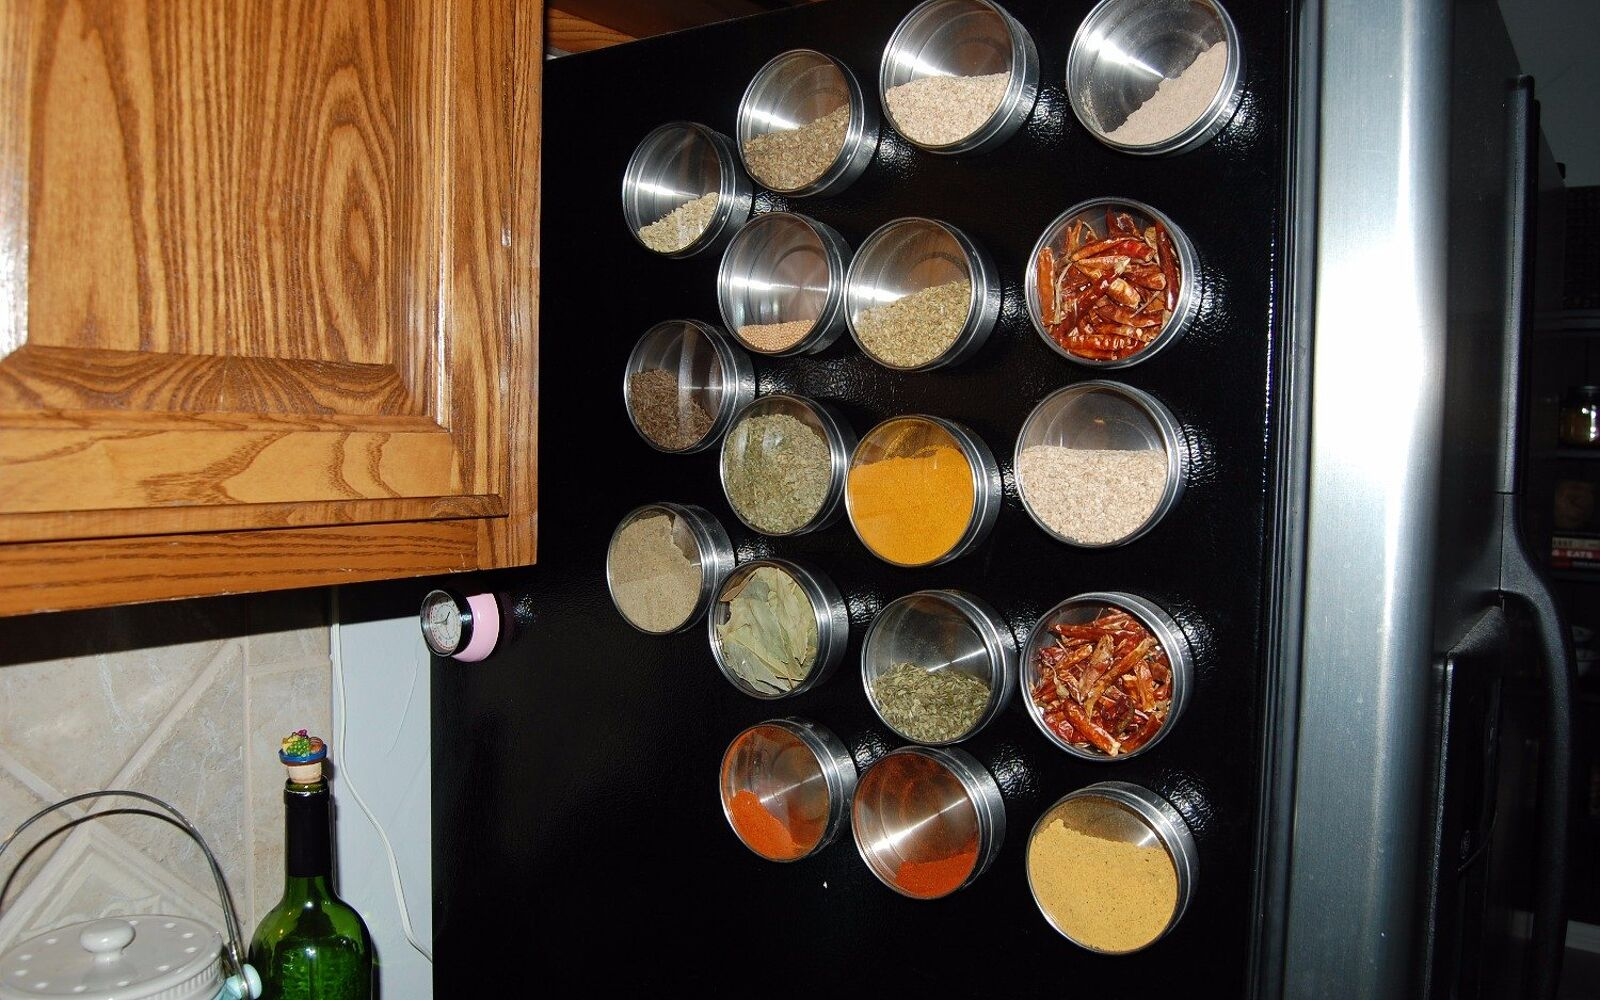 s 31 storage hacks that will instantly declutter your kitchen, Hang your spices on your fridge